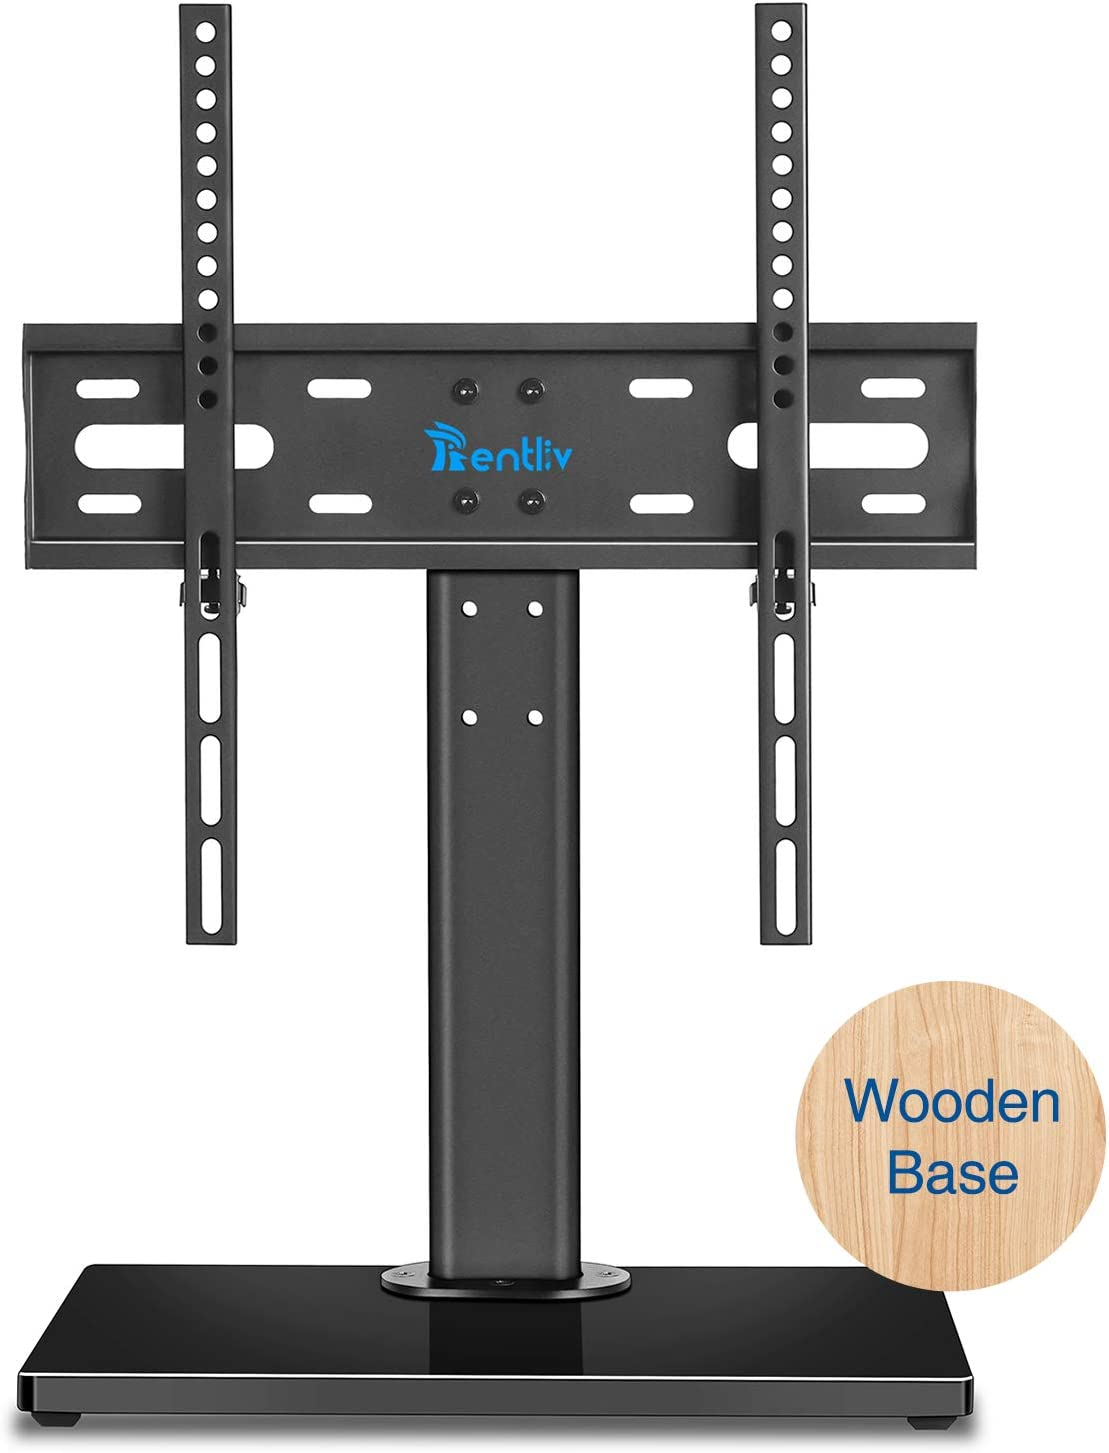 Rentliv Wooden Base Universal TV Stand- Table Top TV Base Stand for 37 to 55 inch TVs - Height Adjustable TV Mount Stand,VESA 400 x 400mm